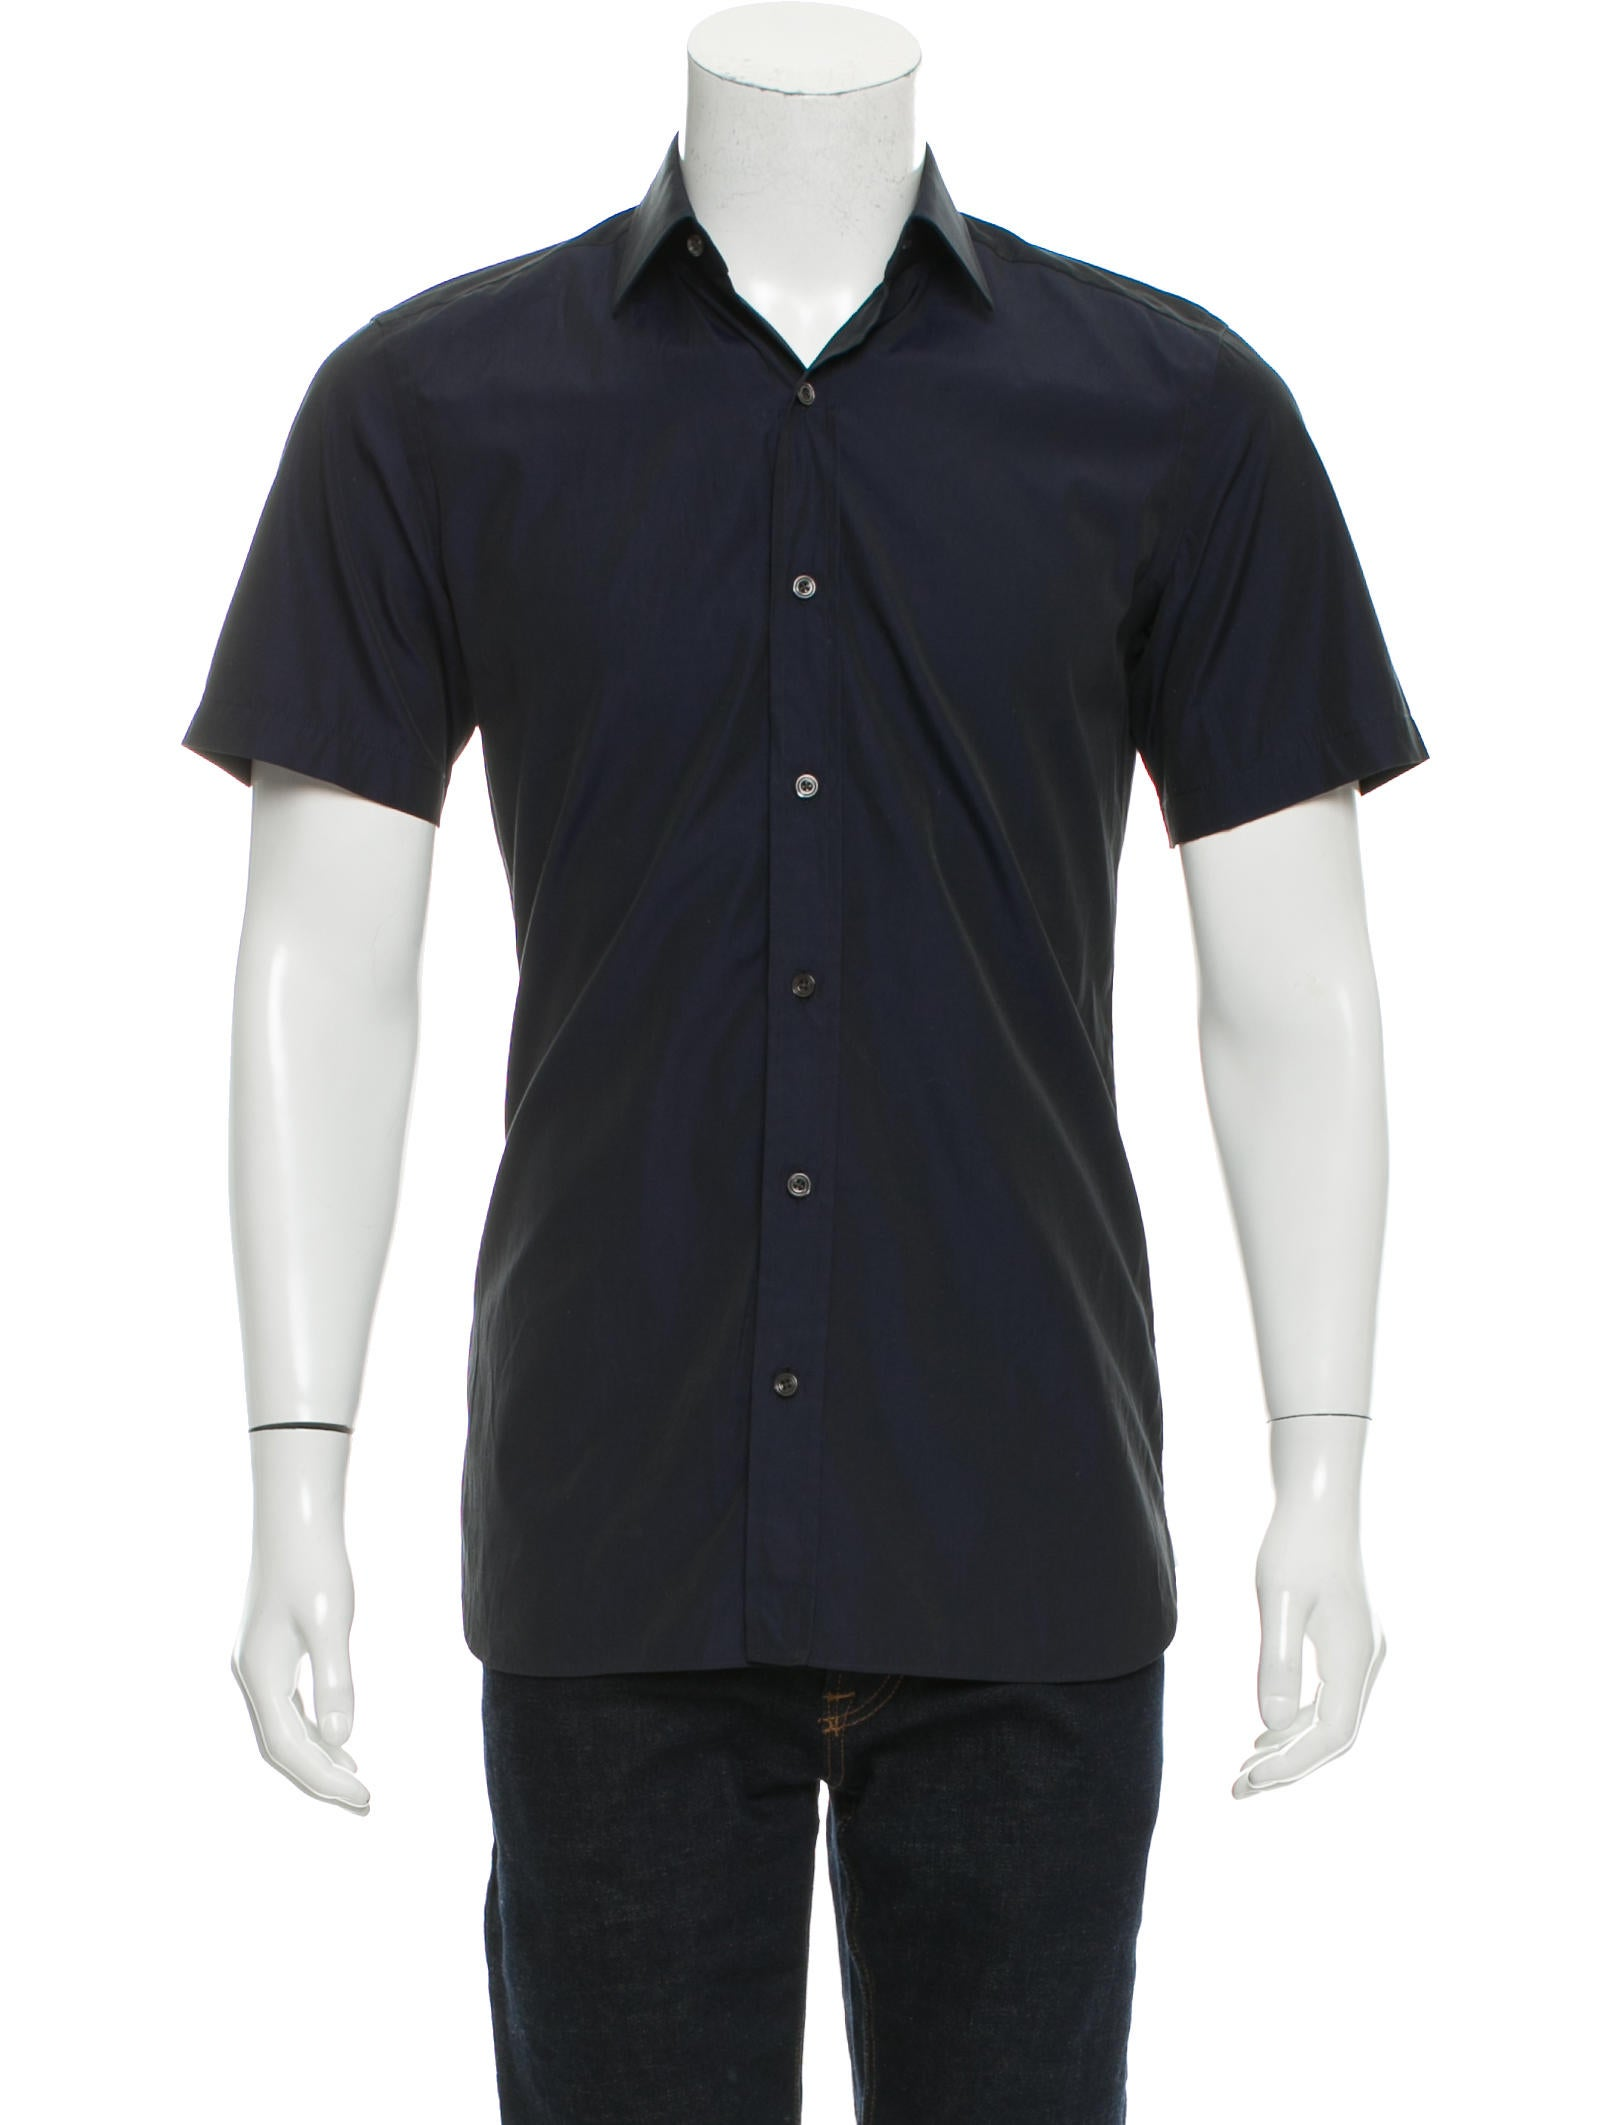 Tom ford short sleeve button up shirt clothing for Short sleeve button up shirts